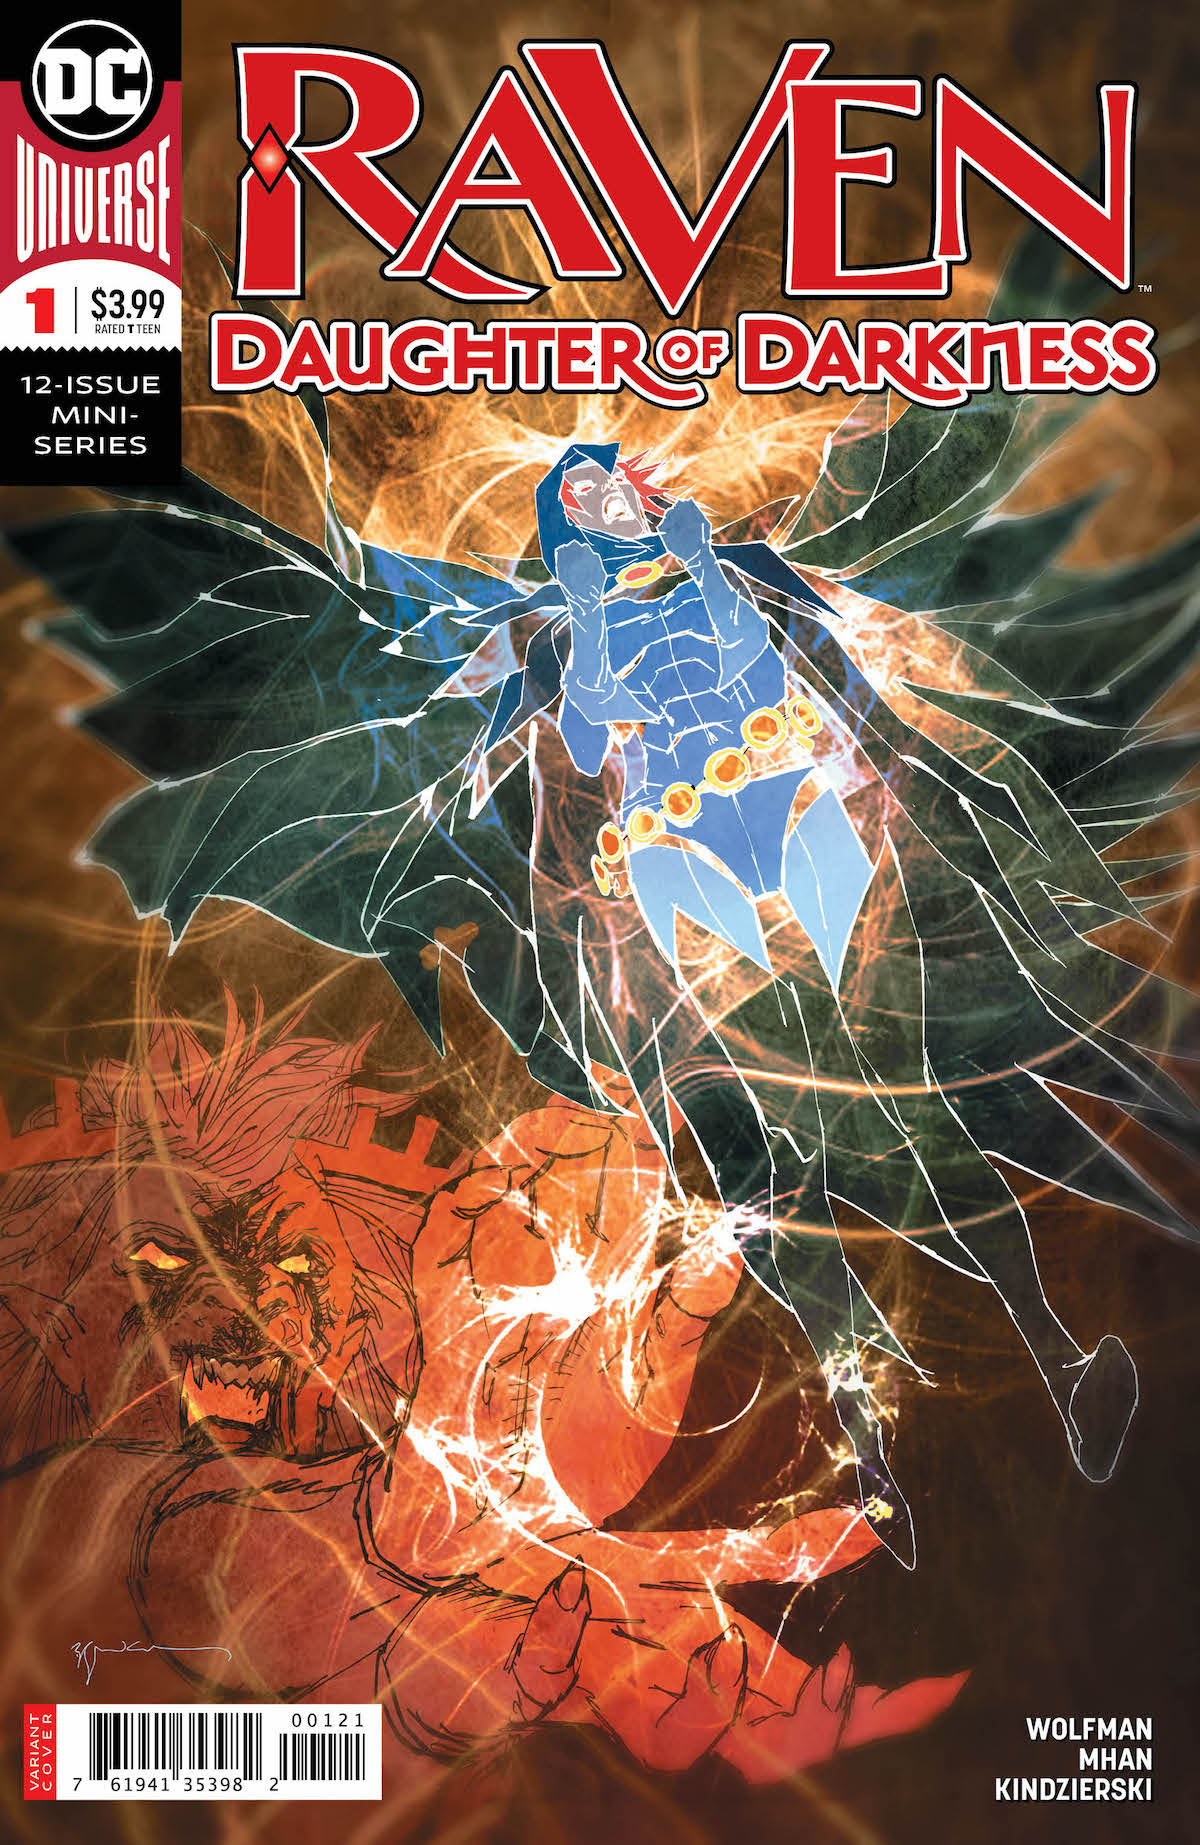 Raven, Daughter of Darkness #1 variant cover